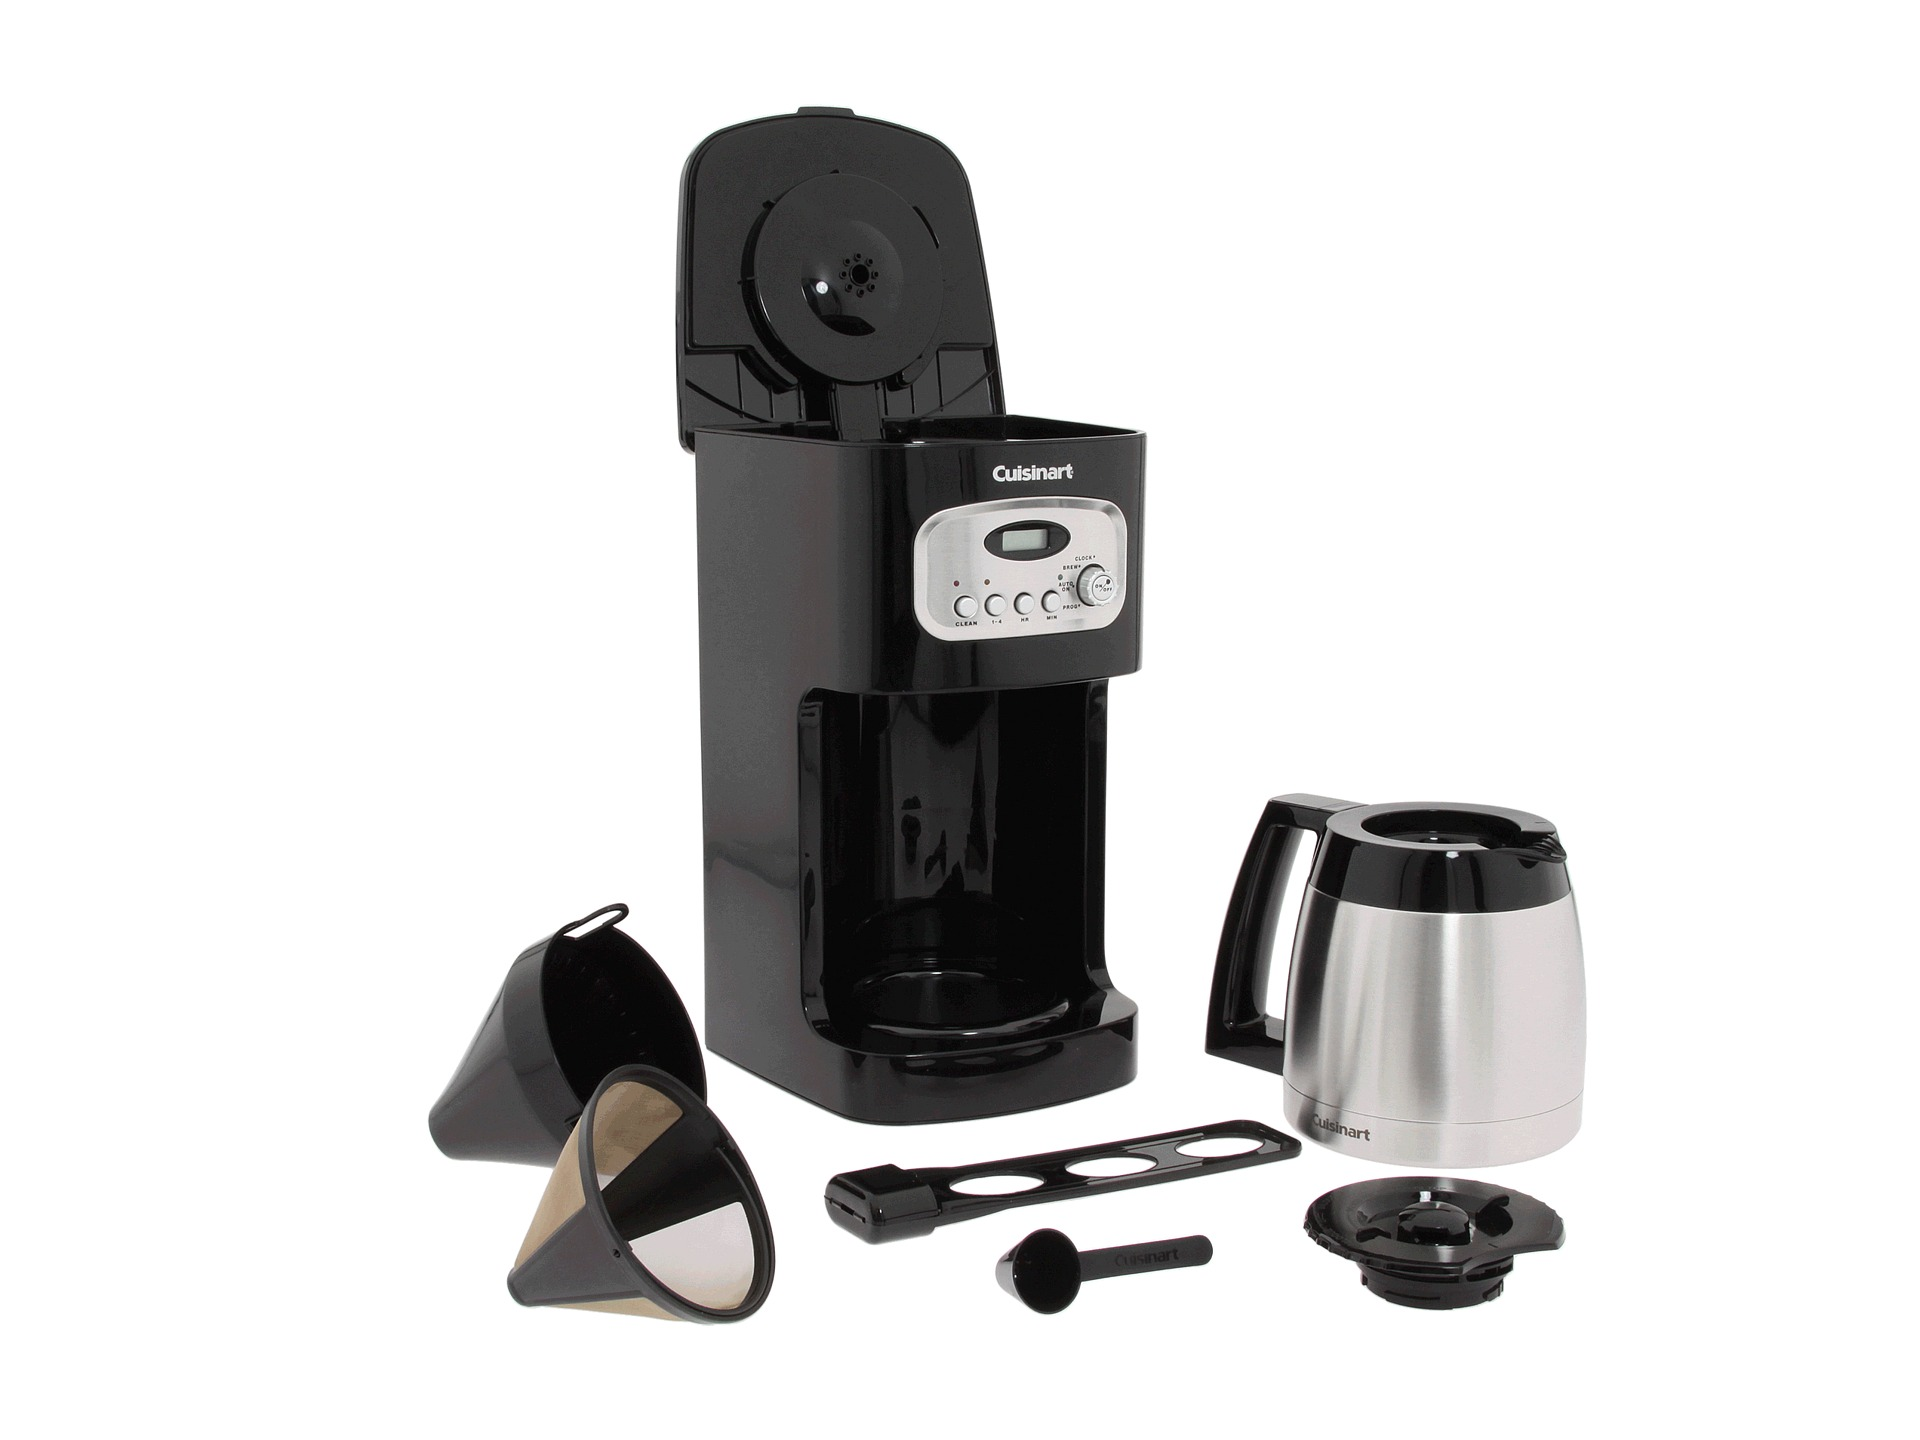 Cuisinart Coffee Maker 10 Cup Thermal Programmable : Cuisinart Dcc 1150bk 10 Cup Programmable Thermal Coffee Maker Shipped Free at Zappos